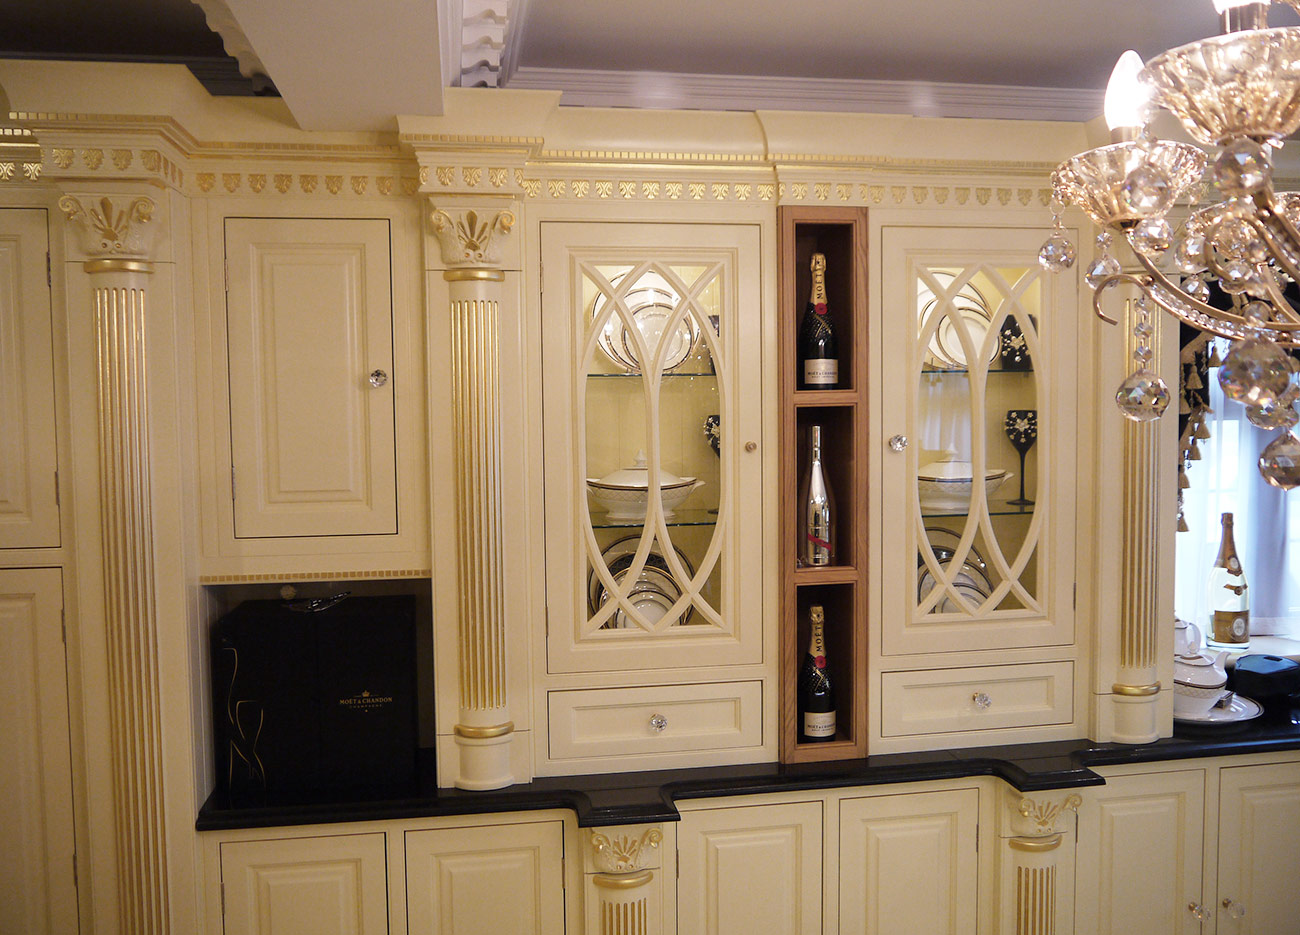 VICTORIAN CREAM KITCHEN WITH GOLD LEAF